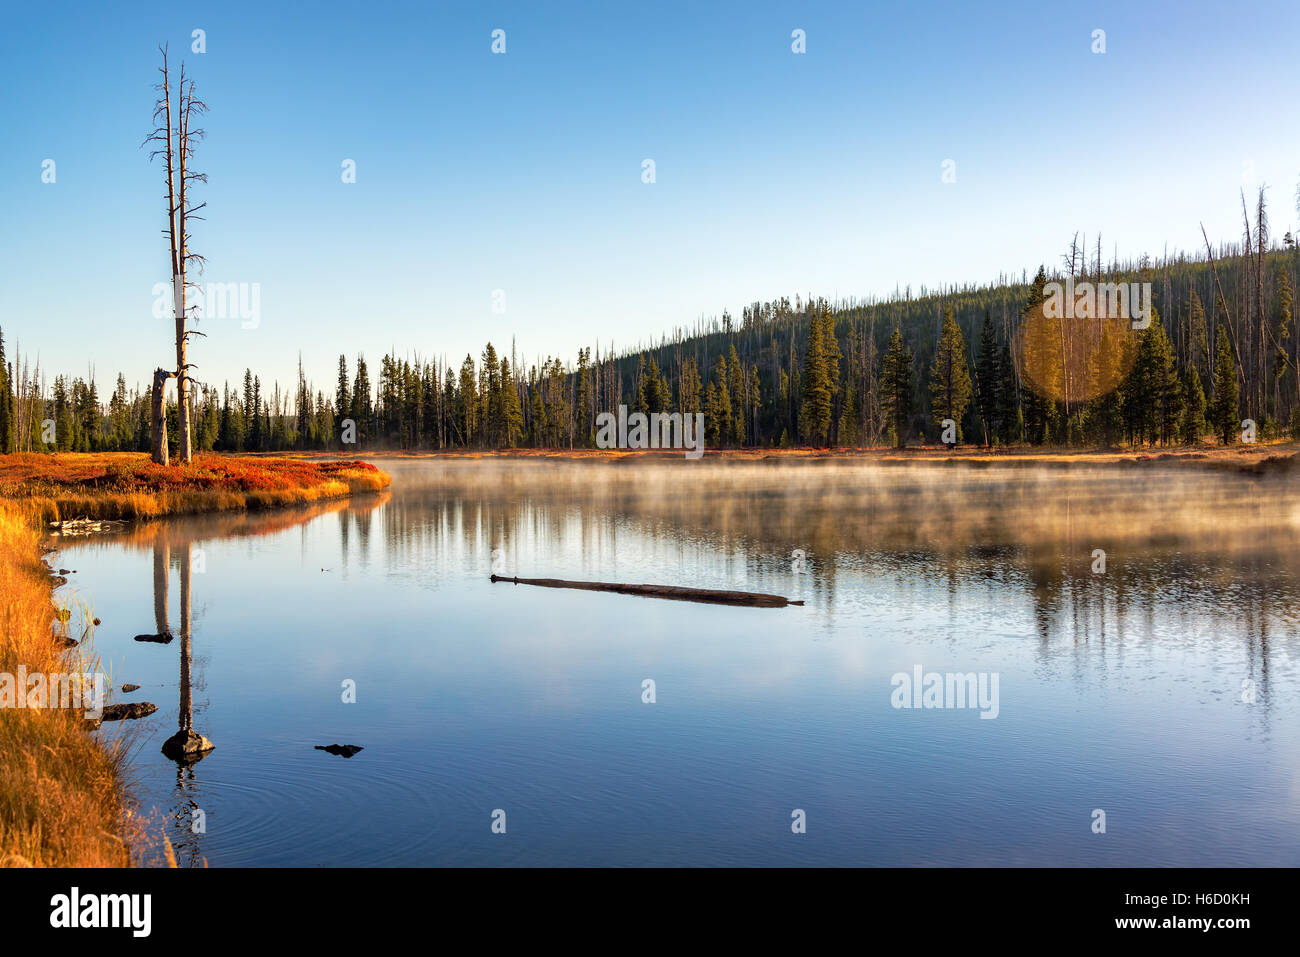 Early morning landscape view of the Snake River in Yellowstone National Park - Stock Image